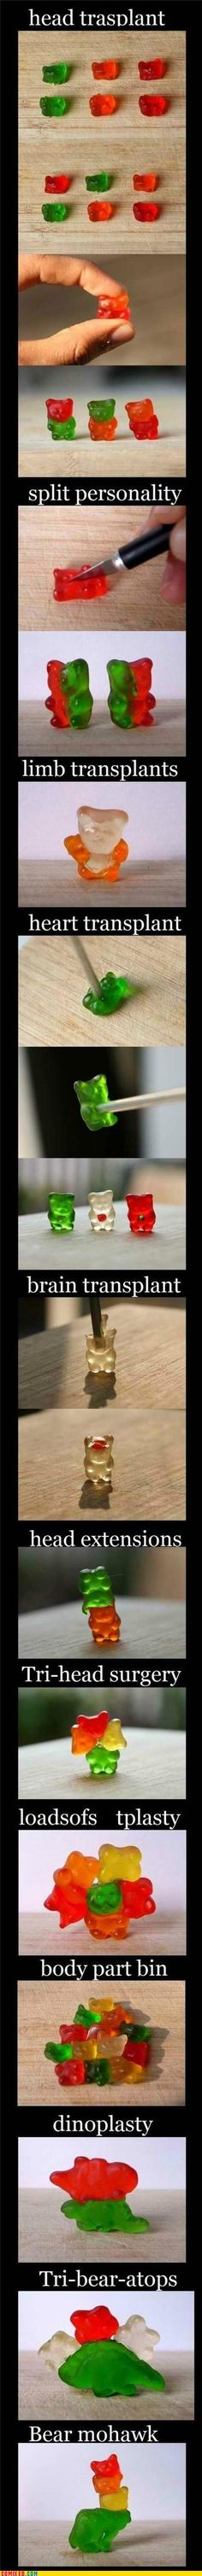 so... he likes to cut and put things back together...how about gummy bears??